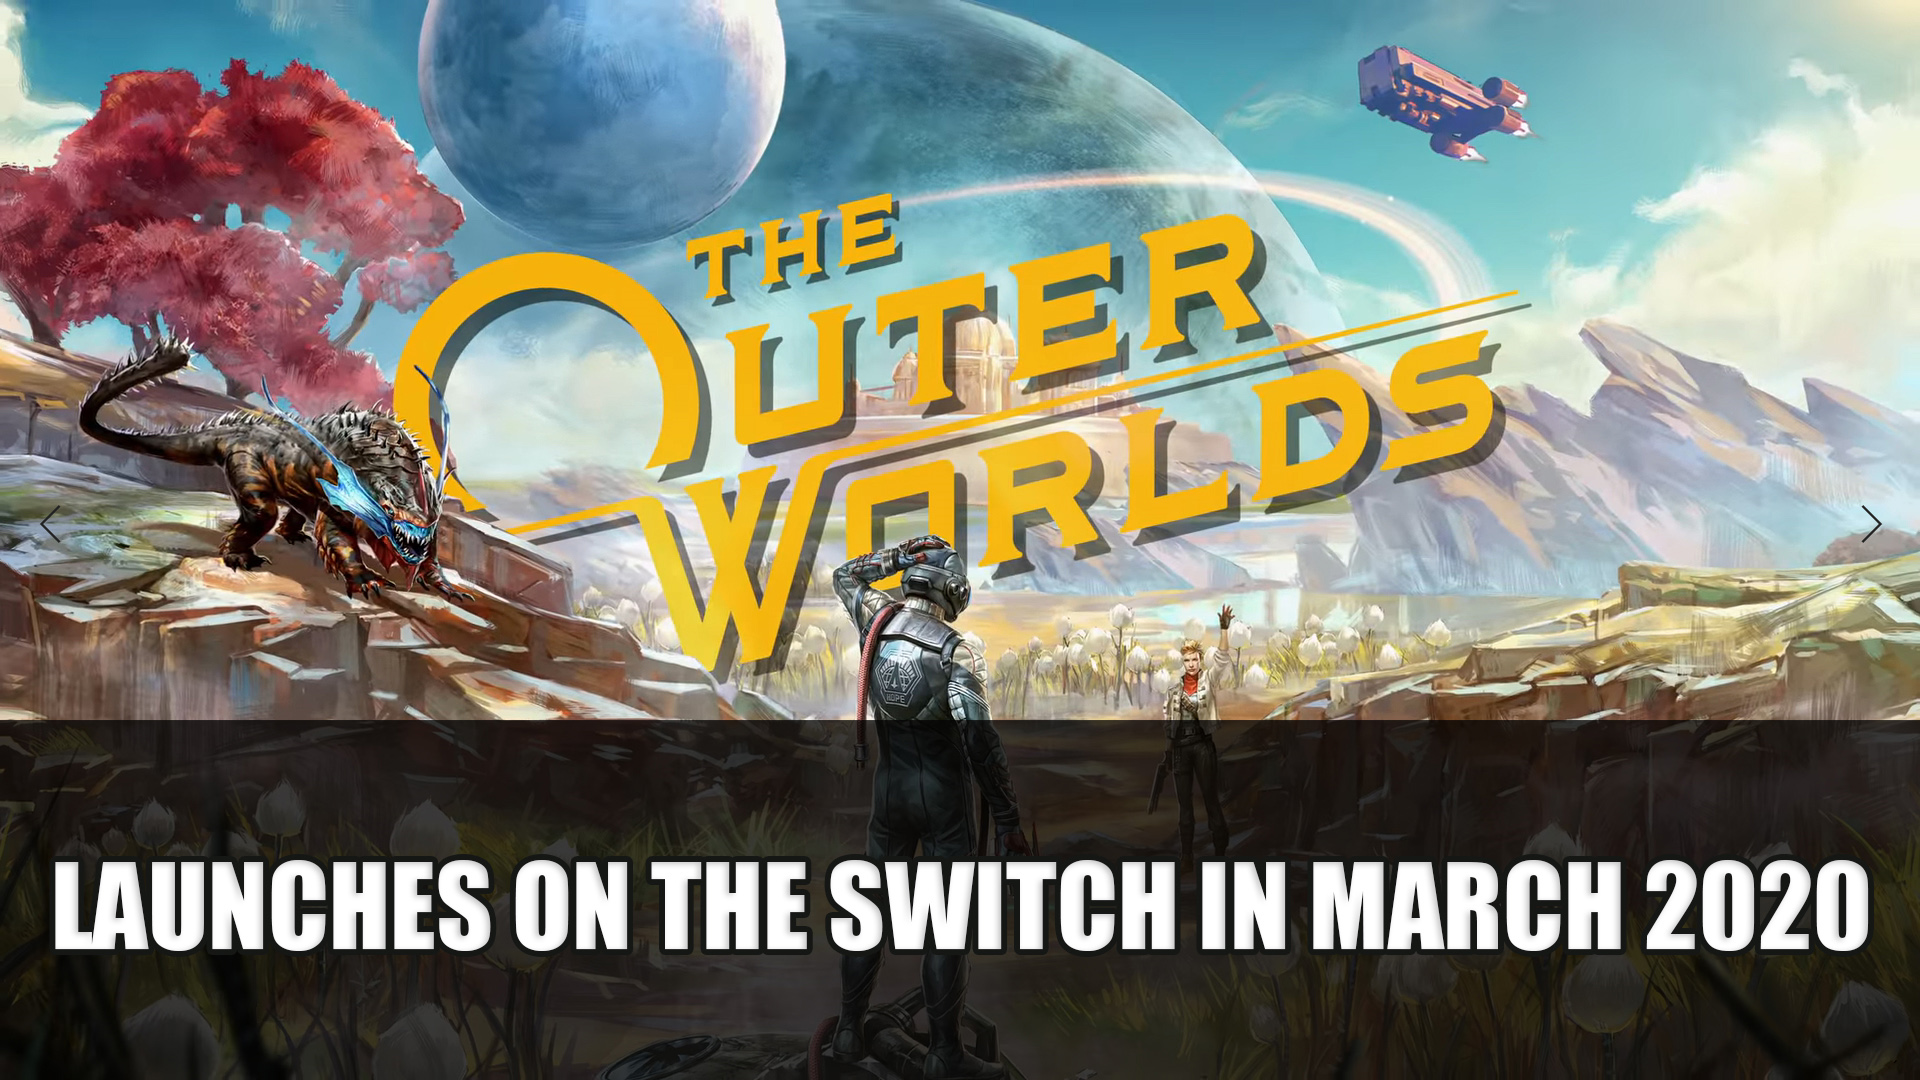 The Outer Worlds Will Launch On The Switch In March Fextralife